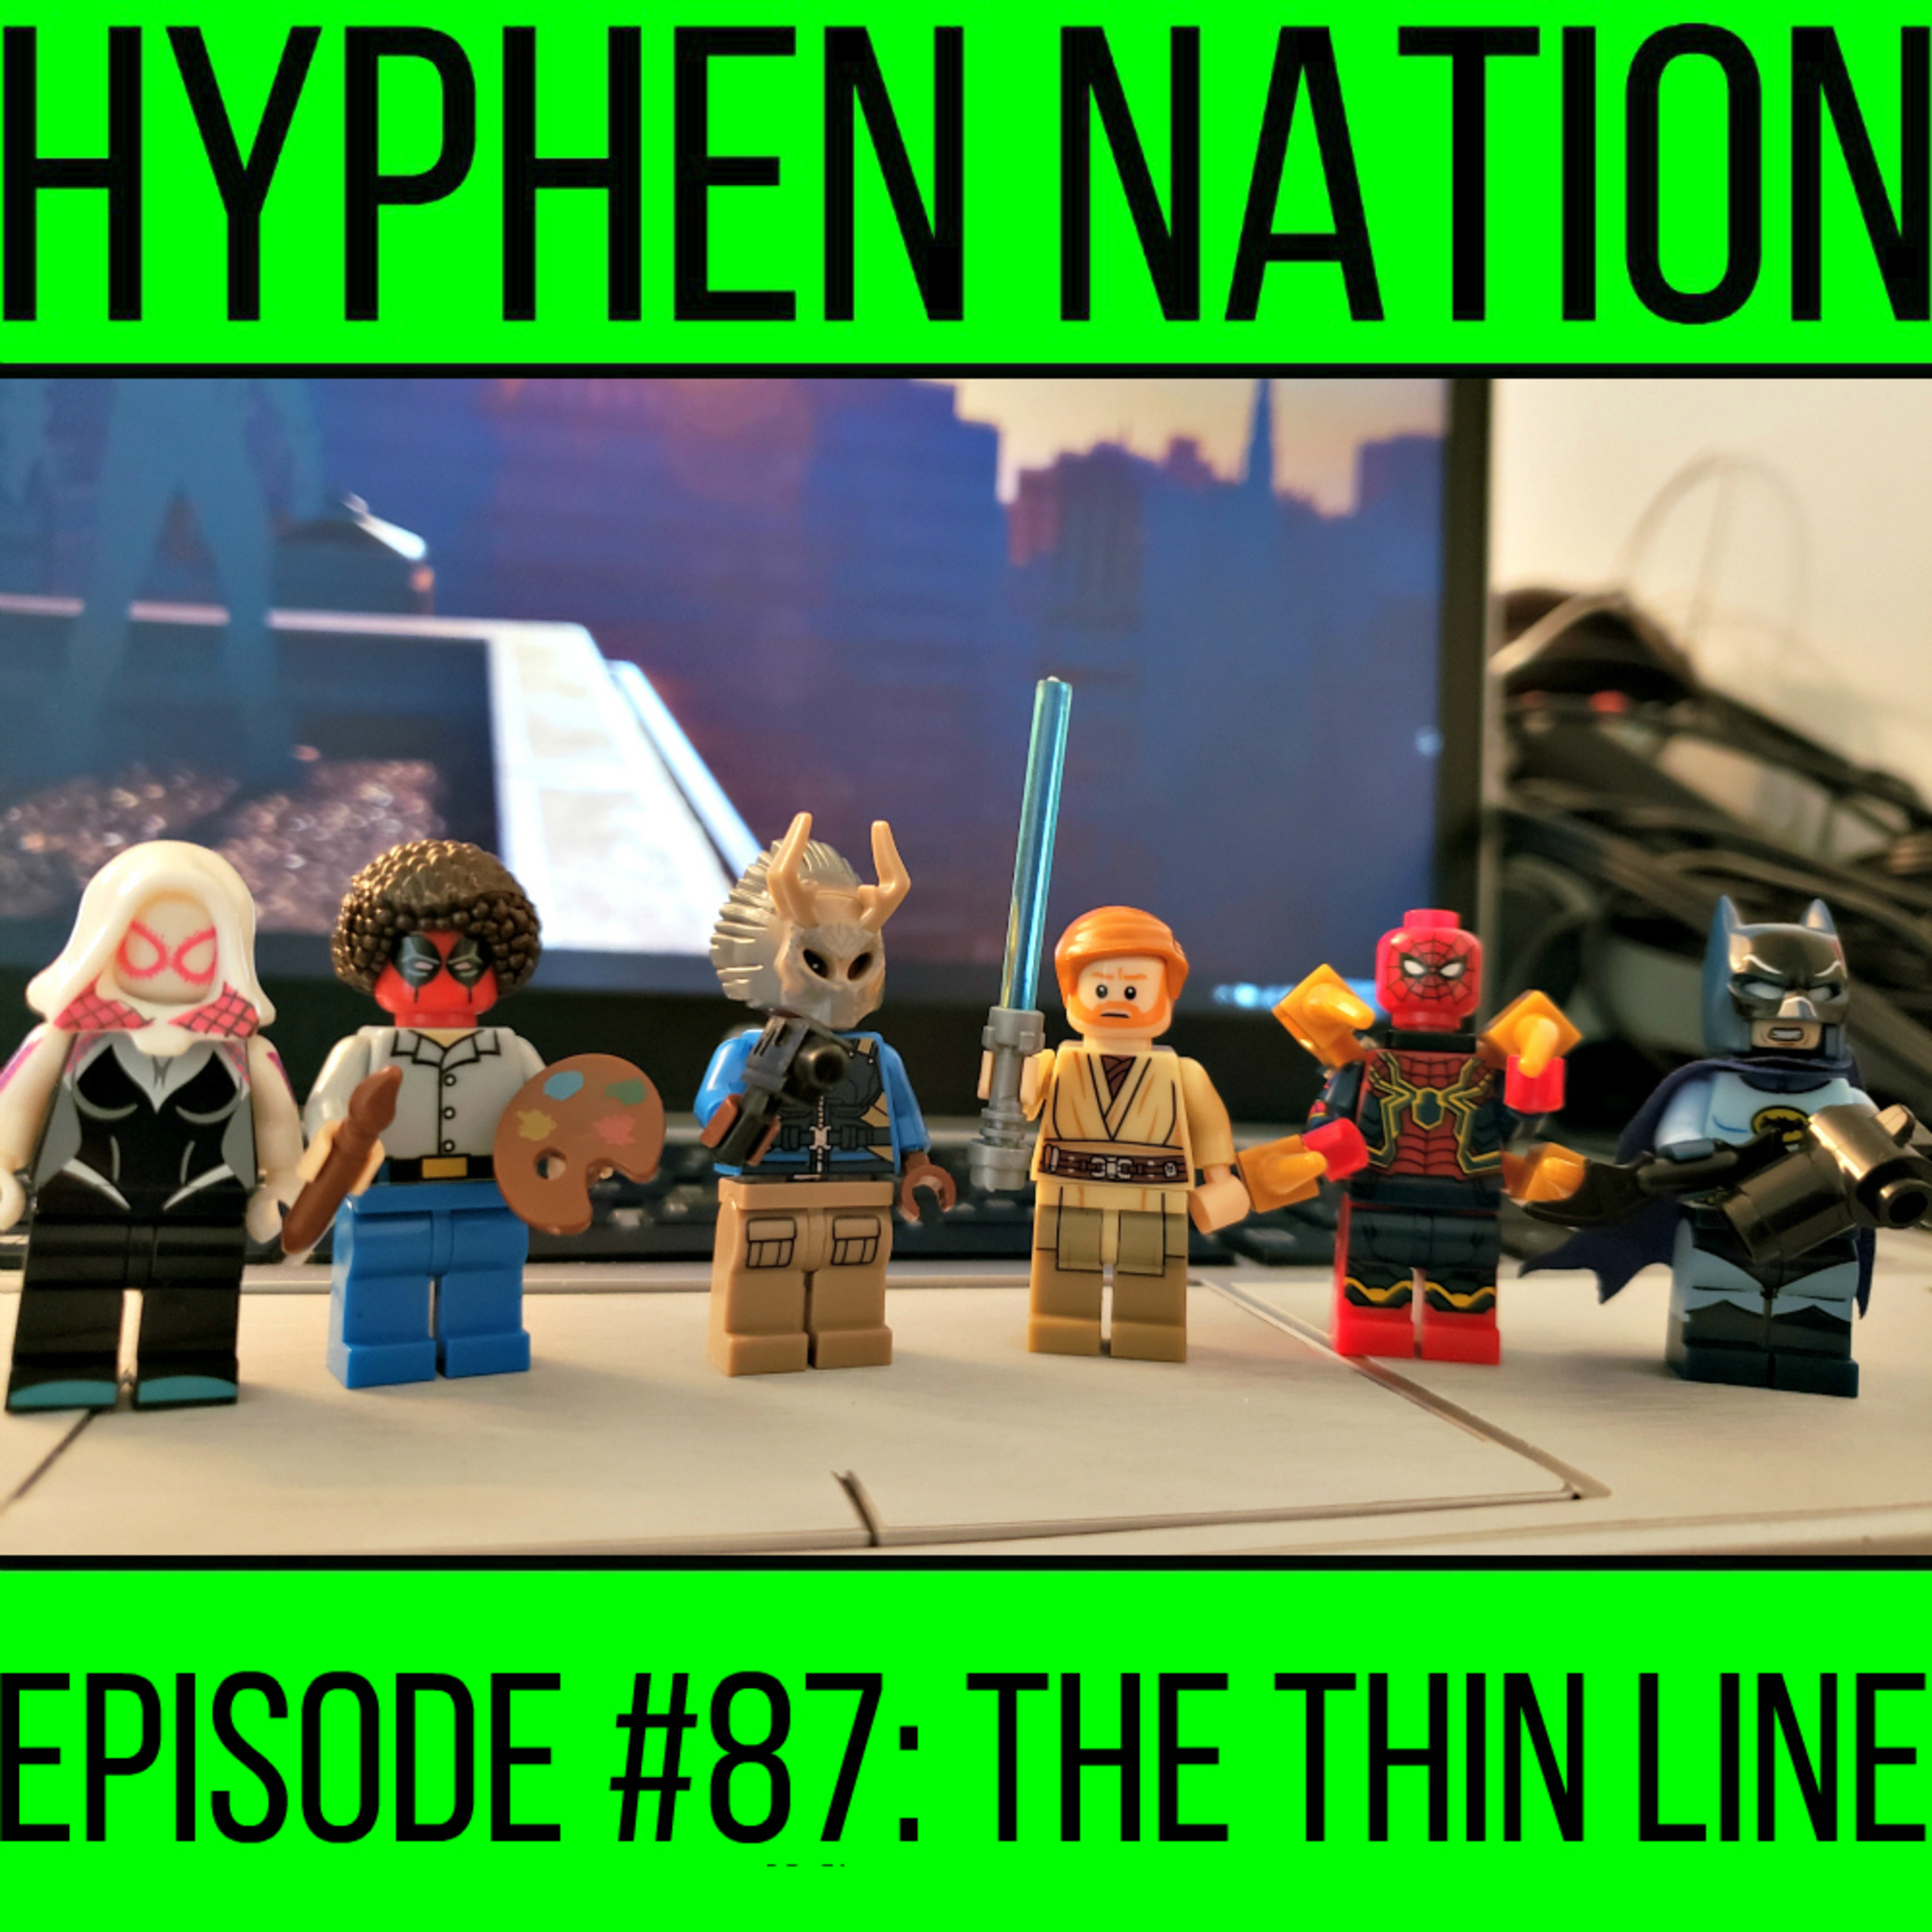 Episode #87: The Thin Line